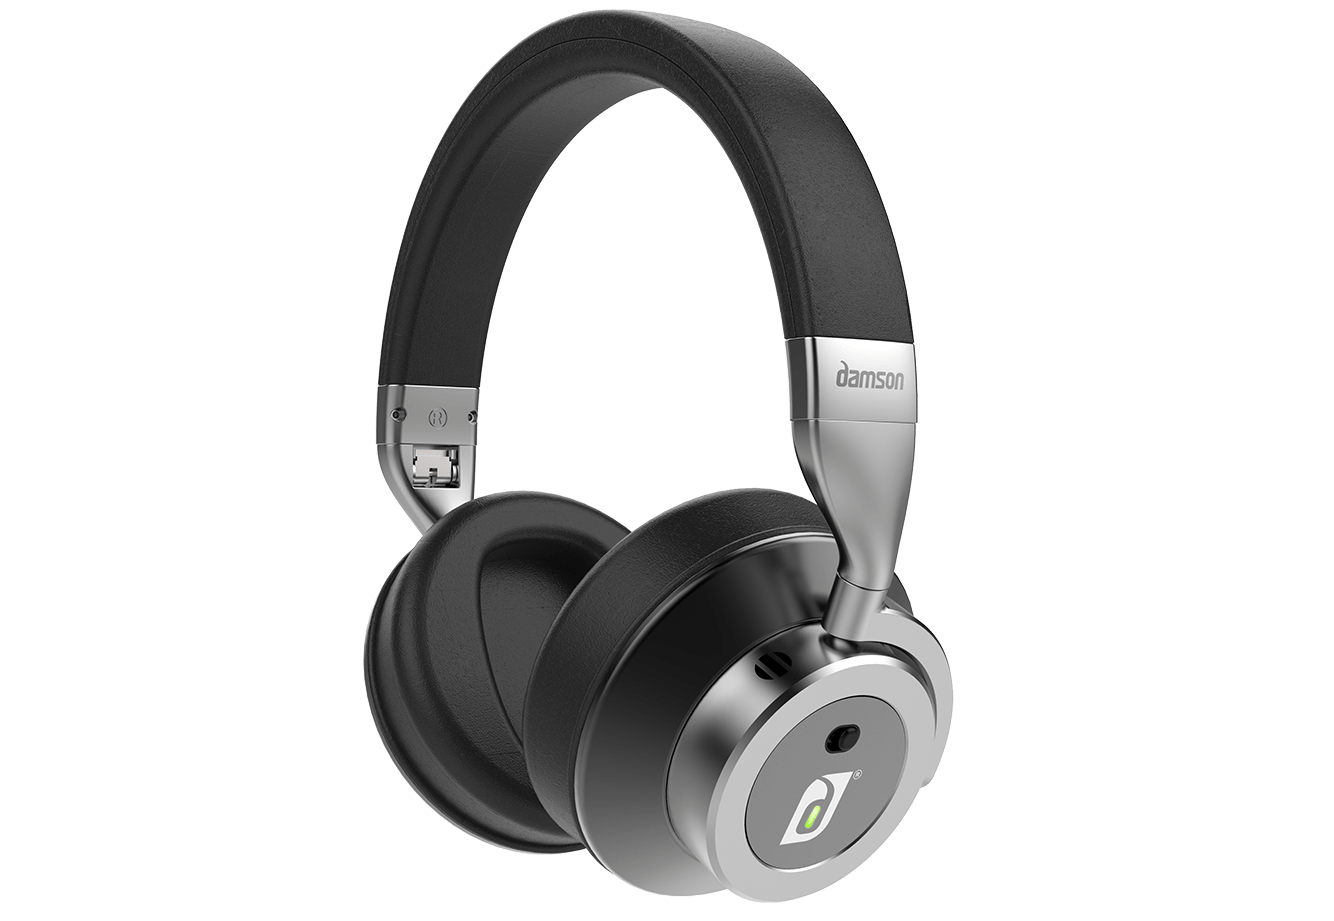 181b29e2464 REVIEW: Damson Headspace Noise-cancelling Headphones | The Test Pit